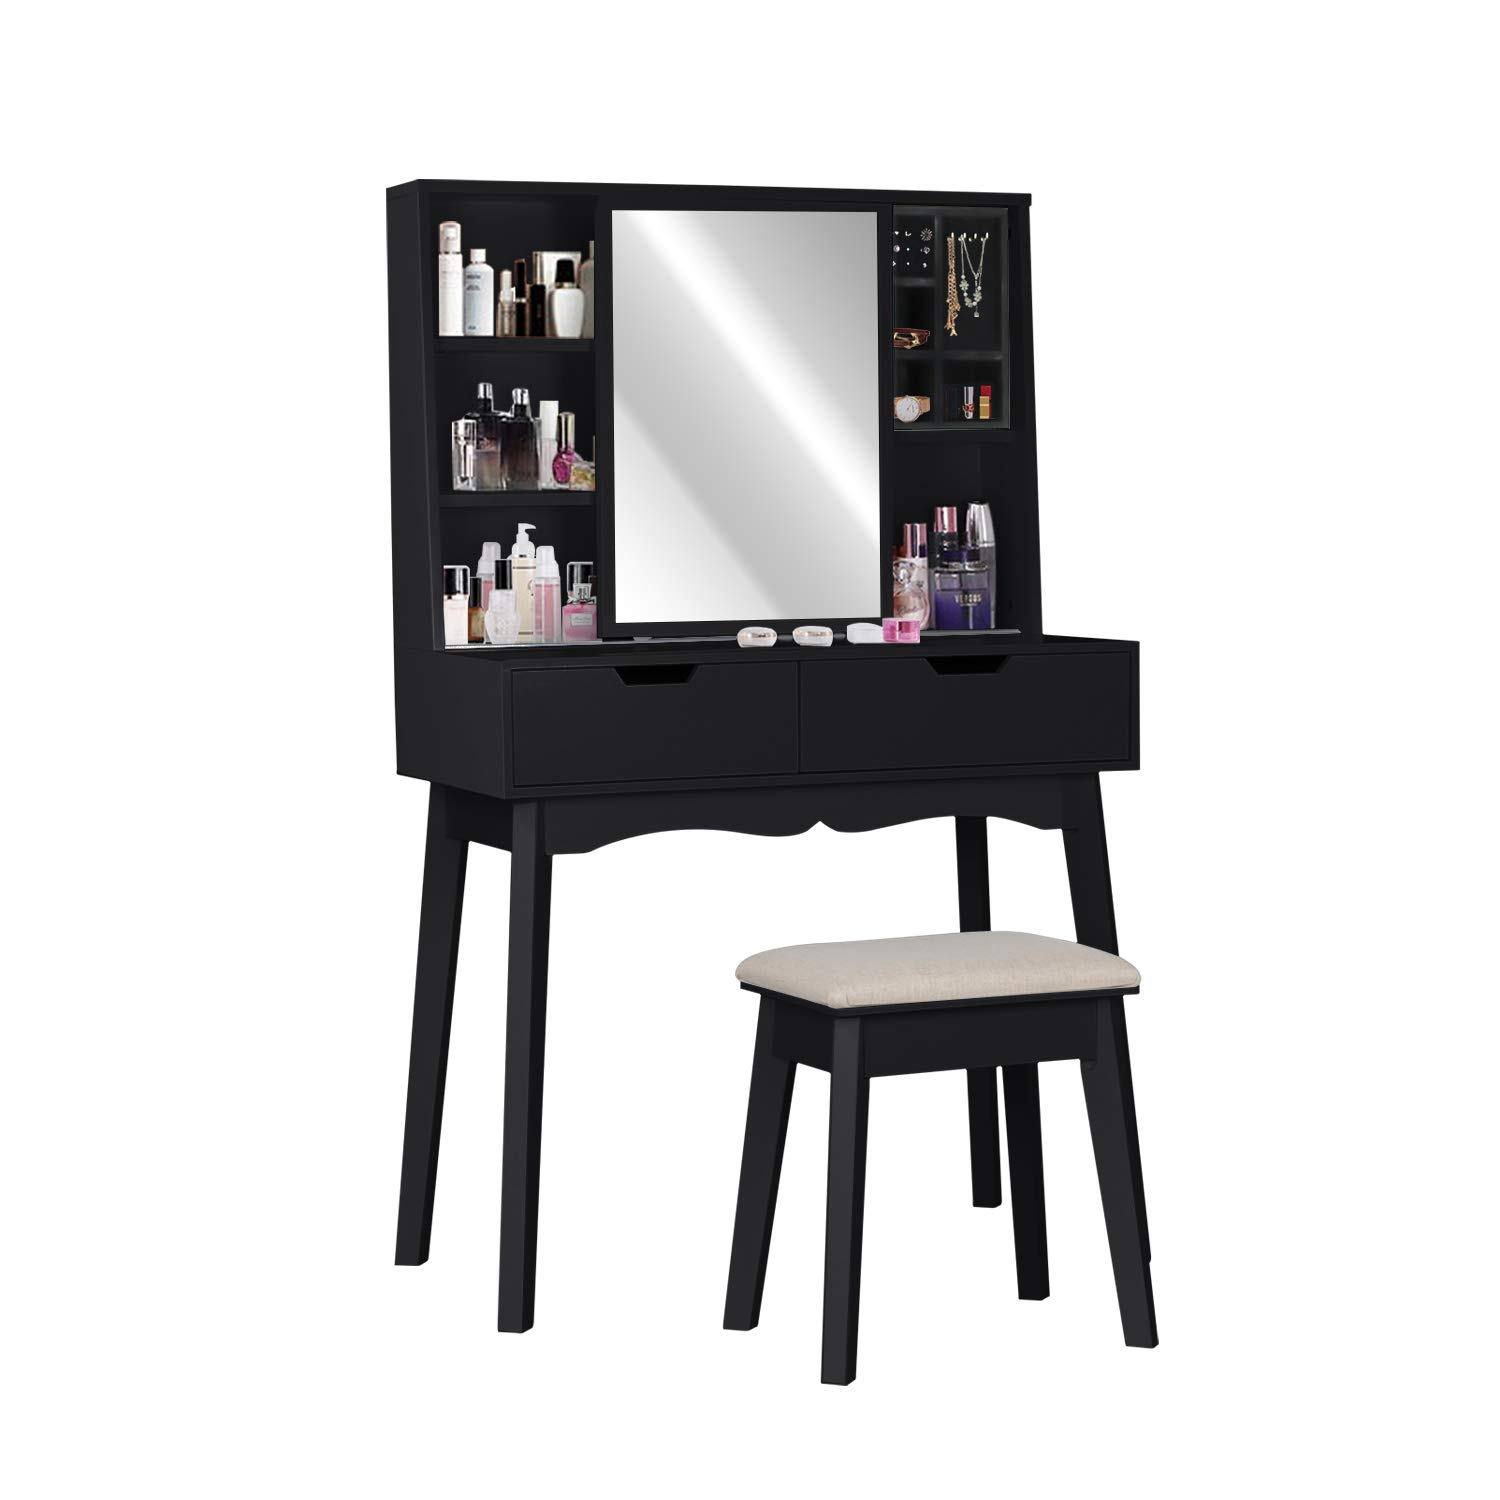 Vanity Table Set with Mirror and Makeup Organizer Dressing Table,2 Large Drawers with Sliding Rails,Storage Shelves,Jewelry Box,Cushioned Stool,Makeup Vanity Desk (Black)